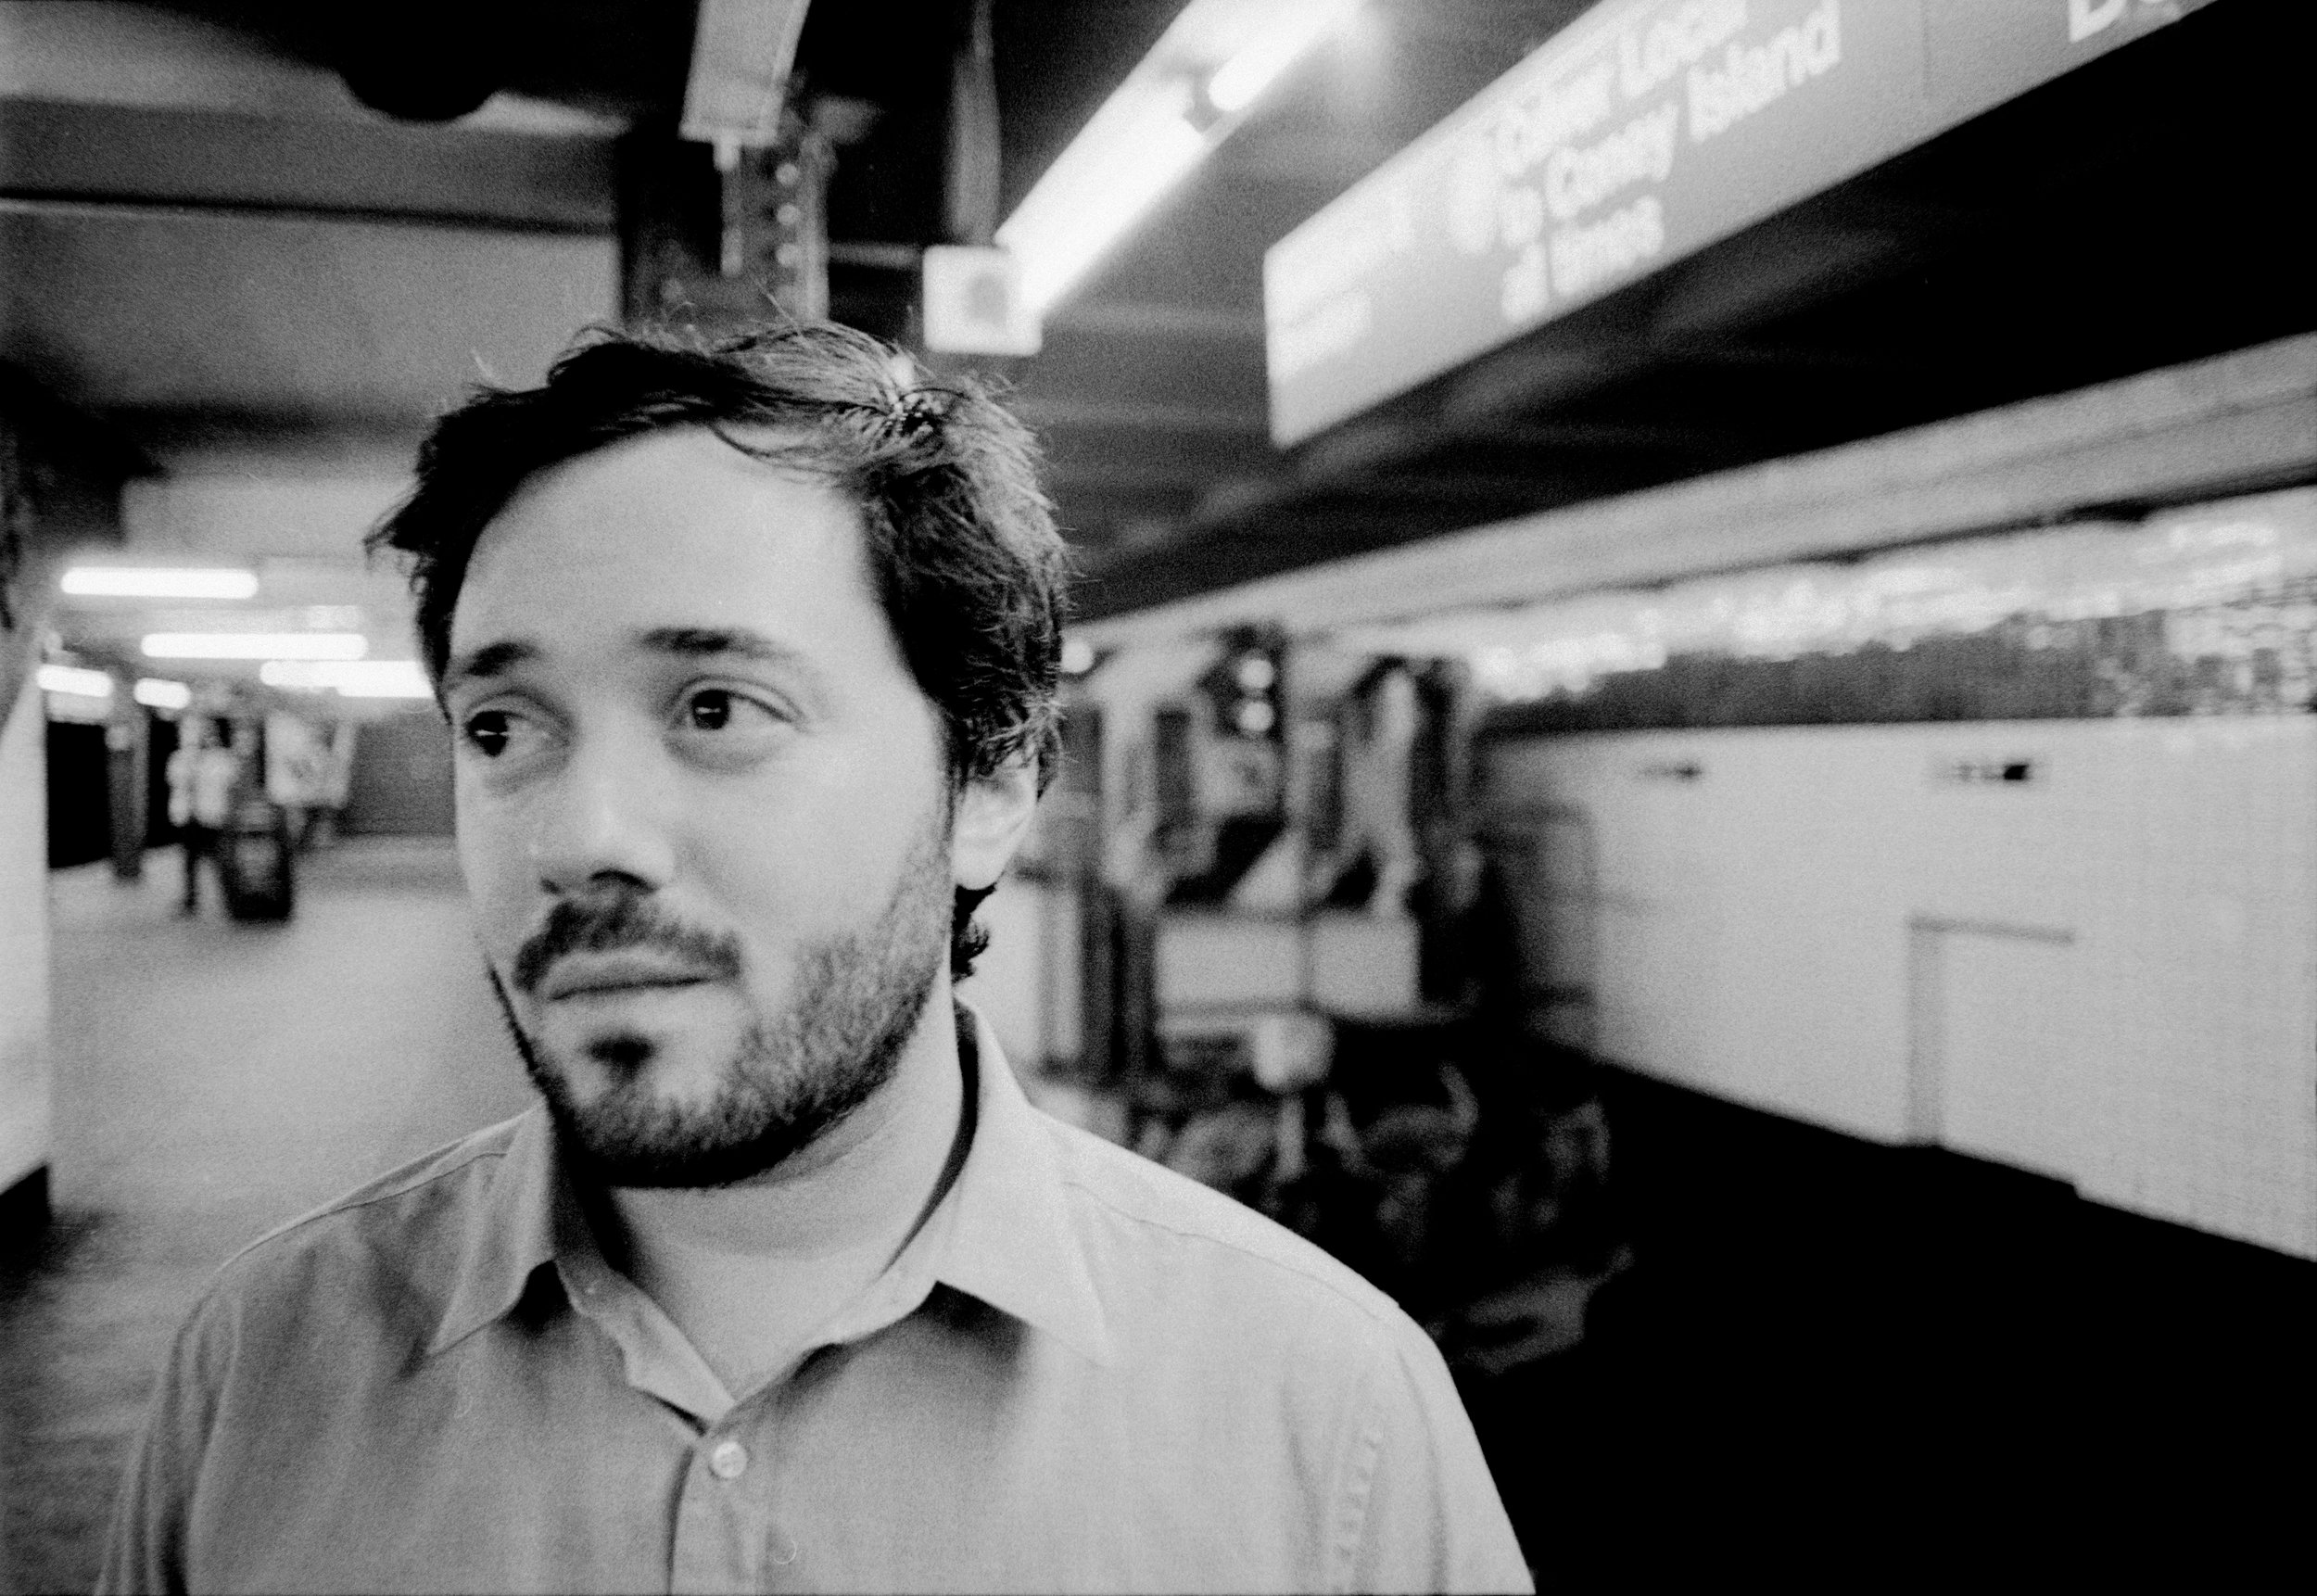 Rob 1 - Illford HP5+ Pushed +2